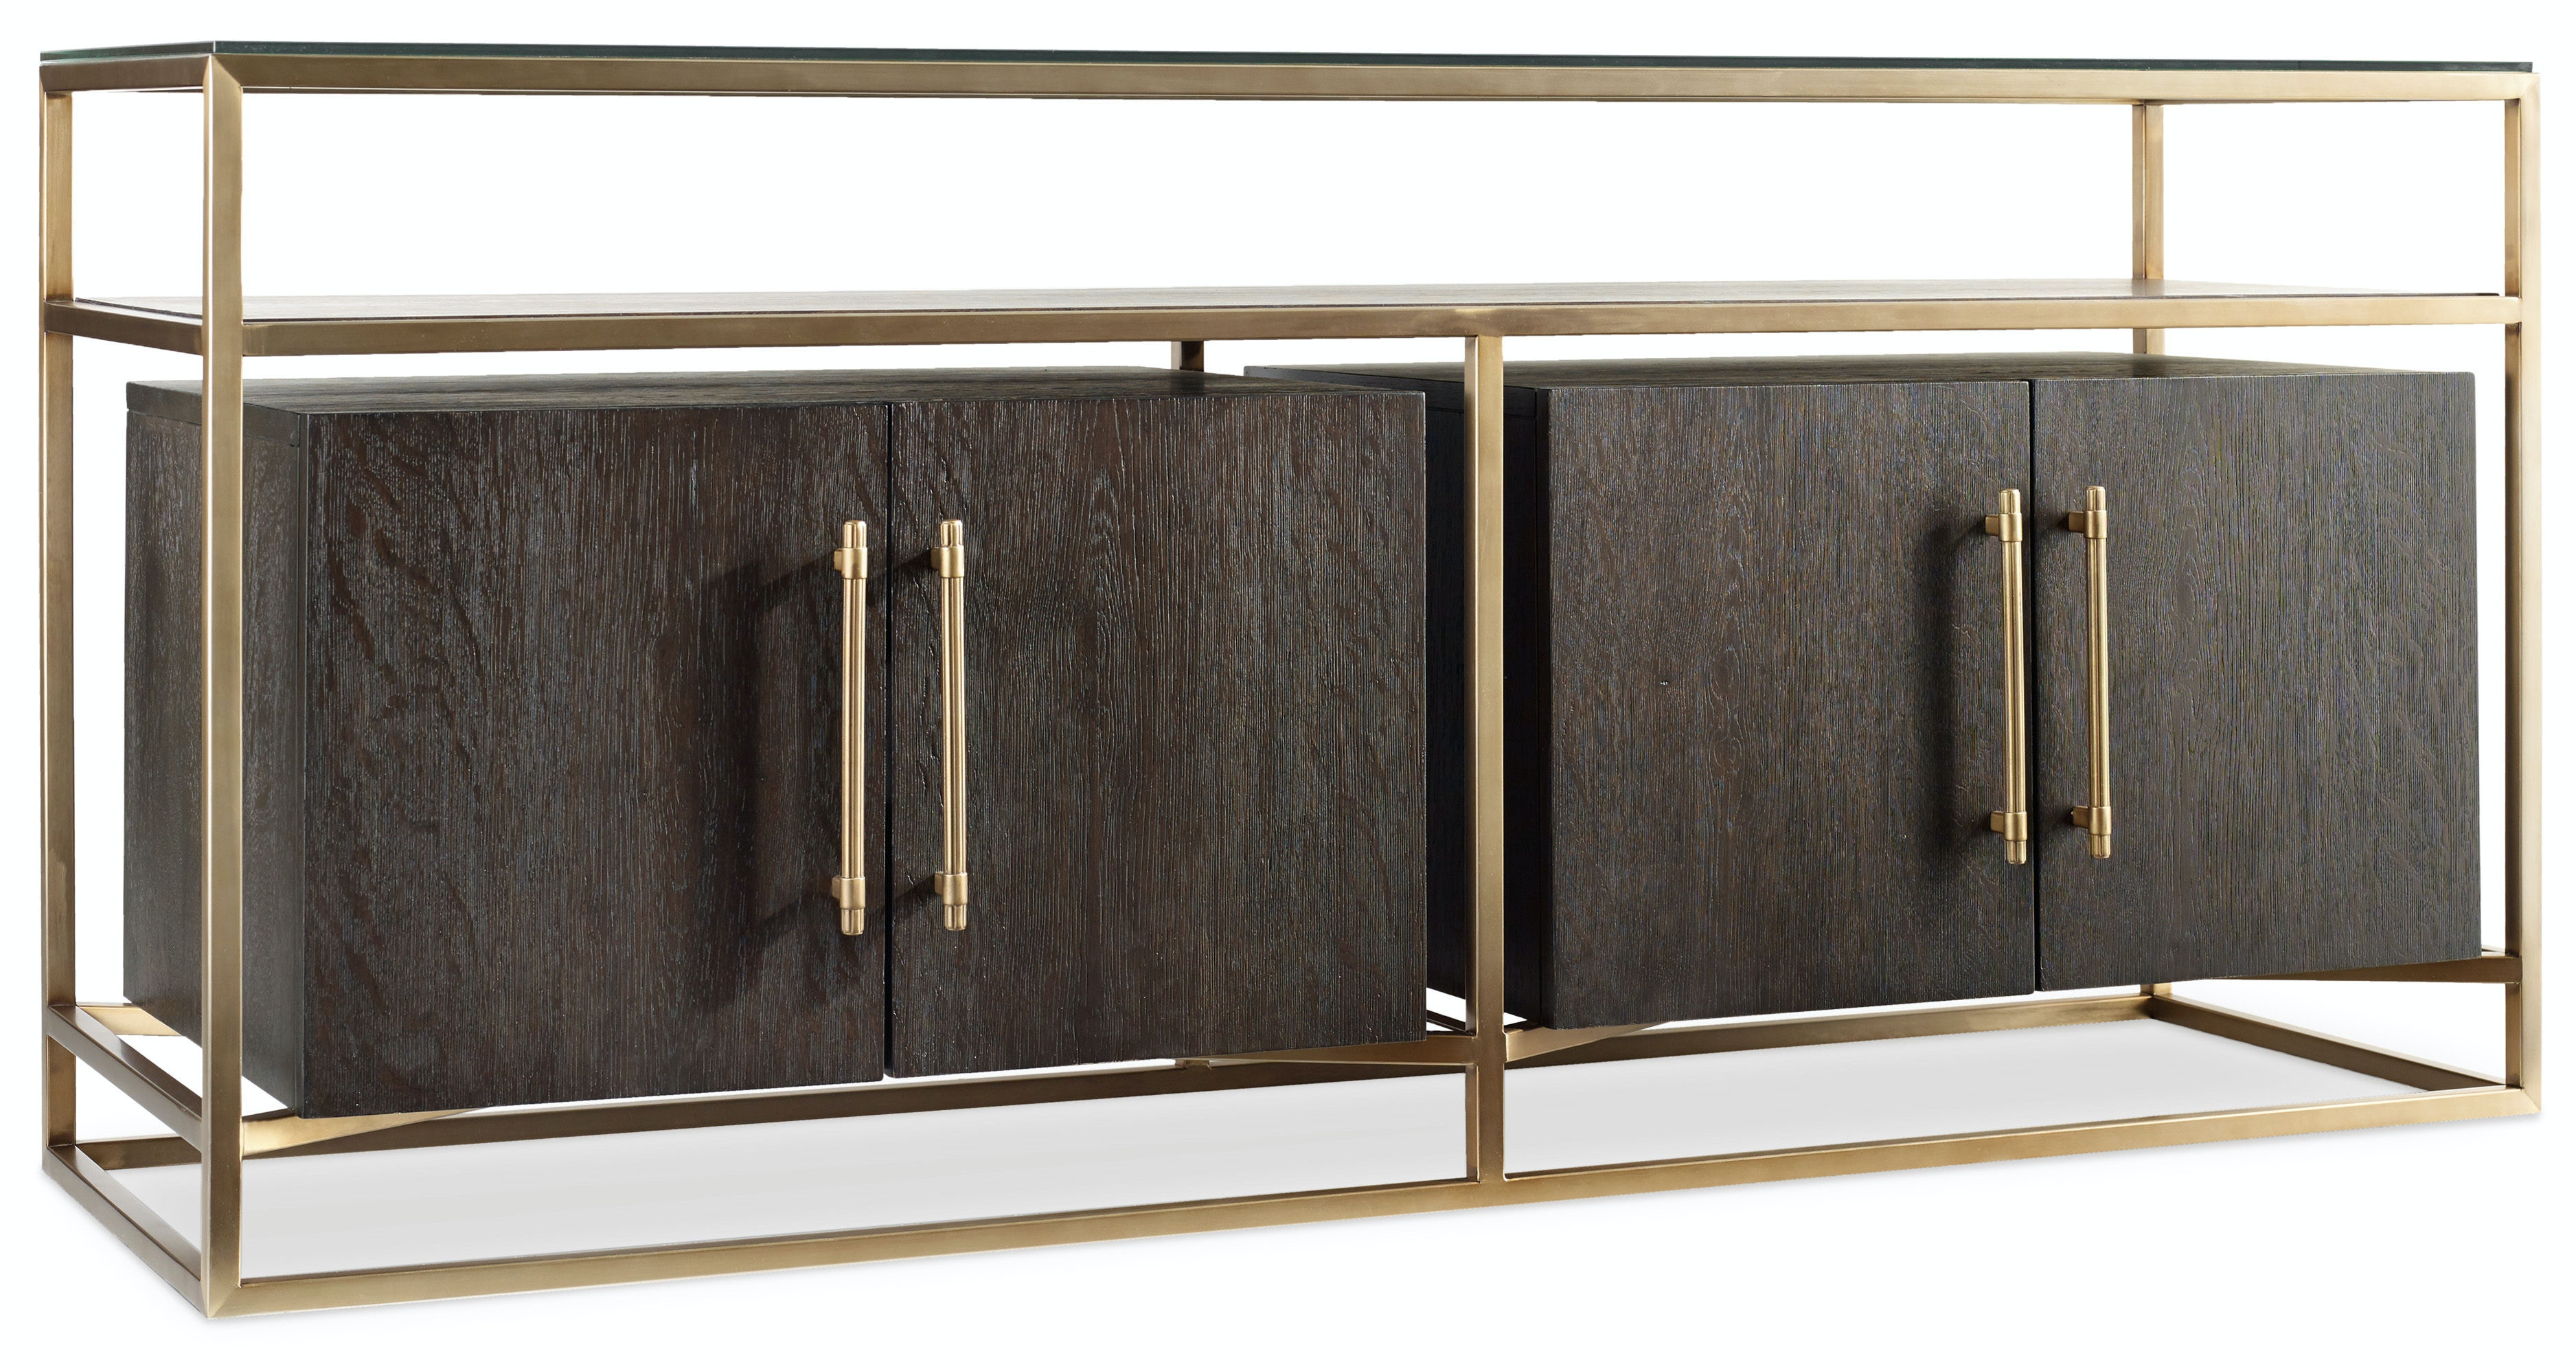 Hooker Furniture Curata Entertainment Console 66in 1600 55466 DKW